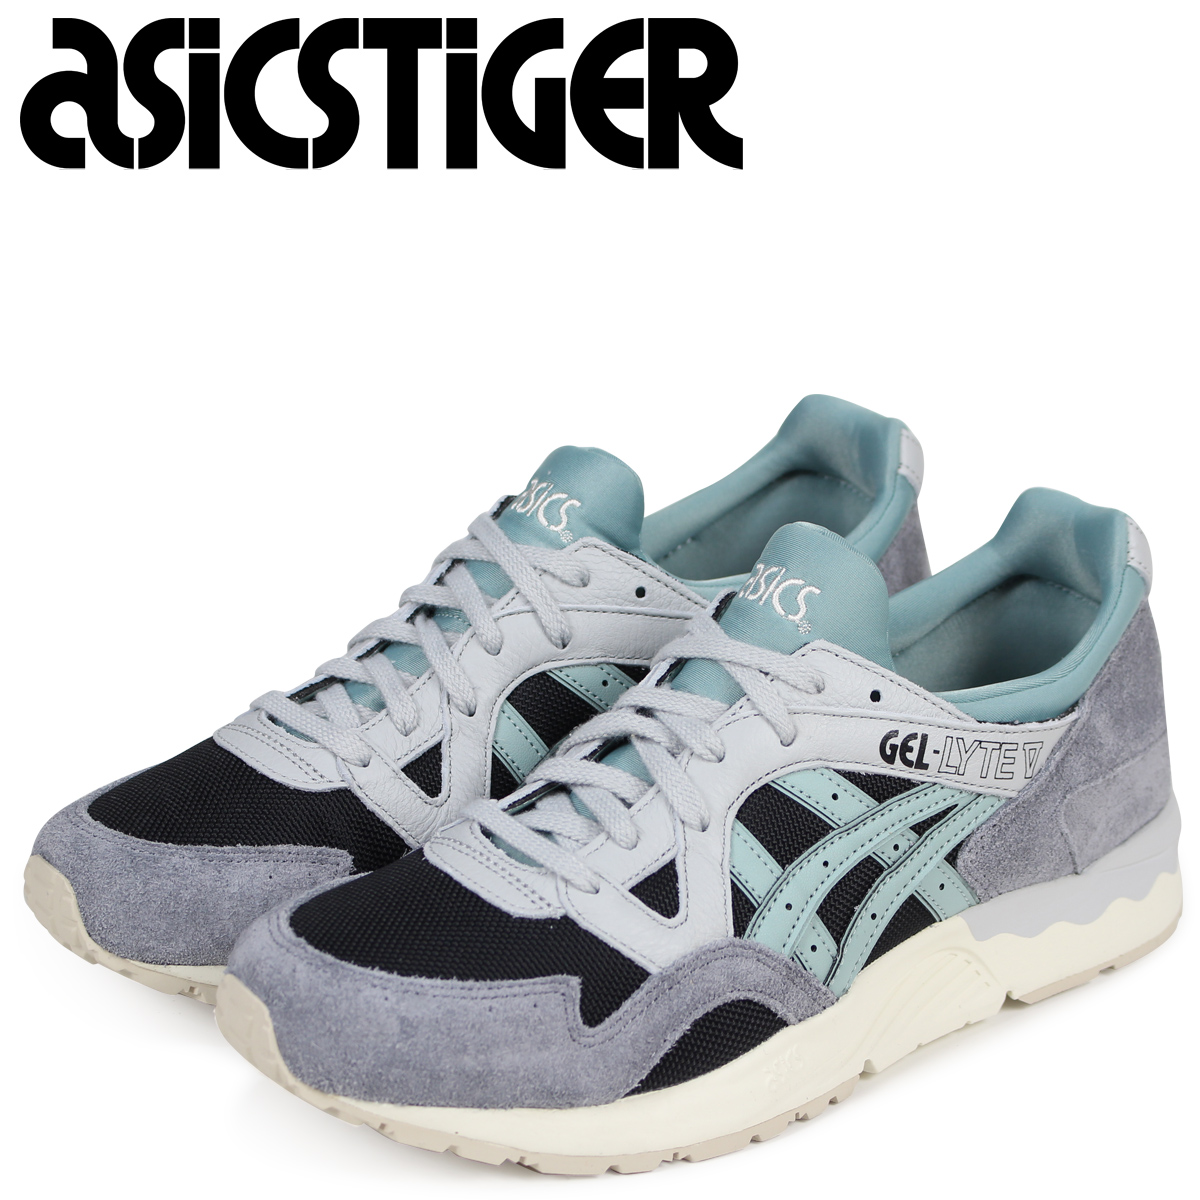 brand new 36b58 384ed asics Tiger gel light 5 ASICS tiger sneakers GEL-LYTE V H805L-9046 men blue